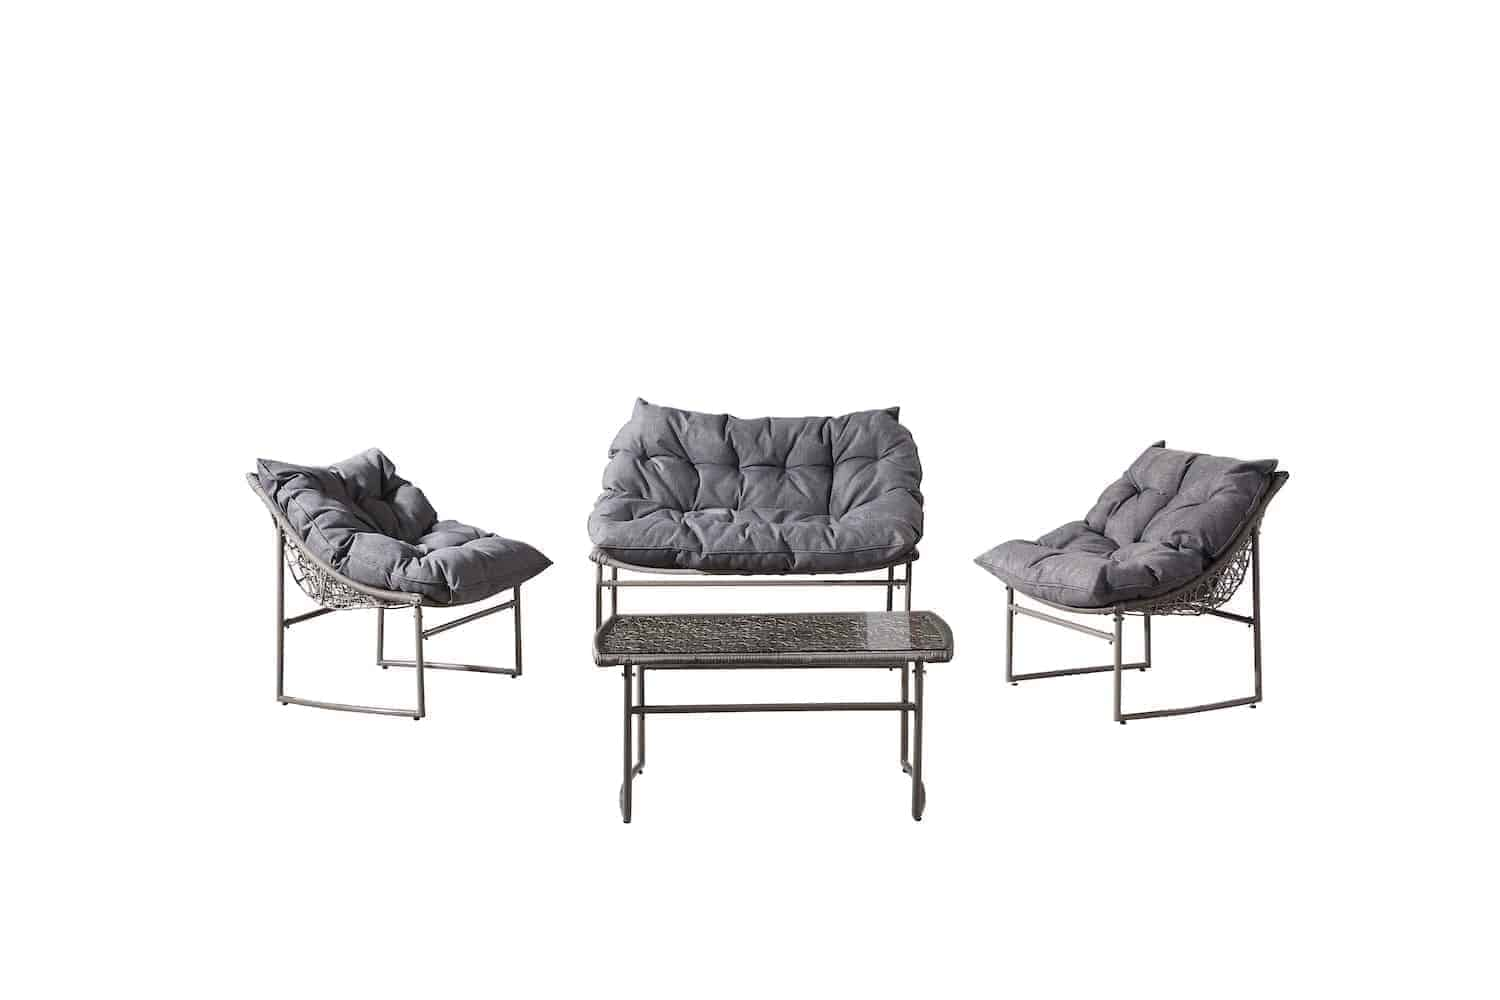 Outdoor Conversation Set For 4 With Uber Fluffy Cushions